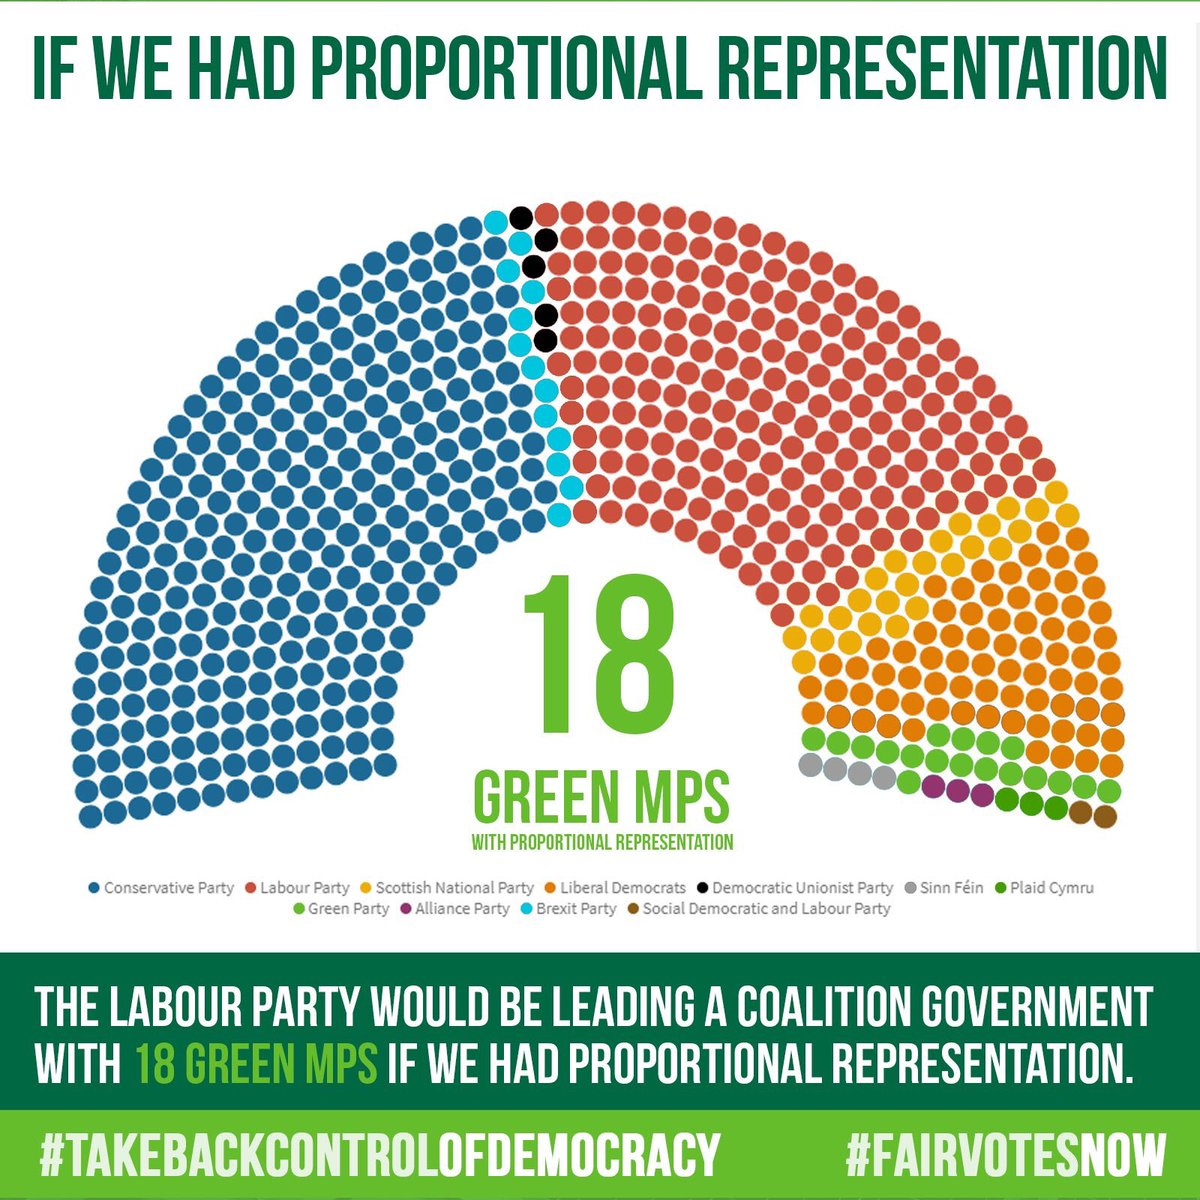 @RLong_Bailey as one of your constituents I'm very much in favour of this. Please push for PR. https://t.co/734C9LraP4